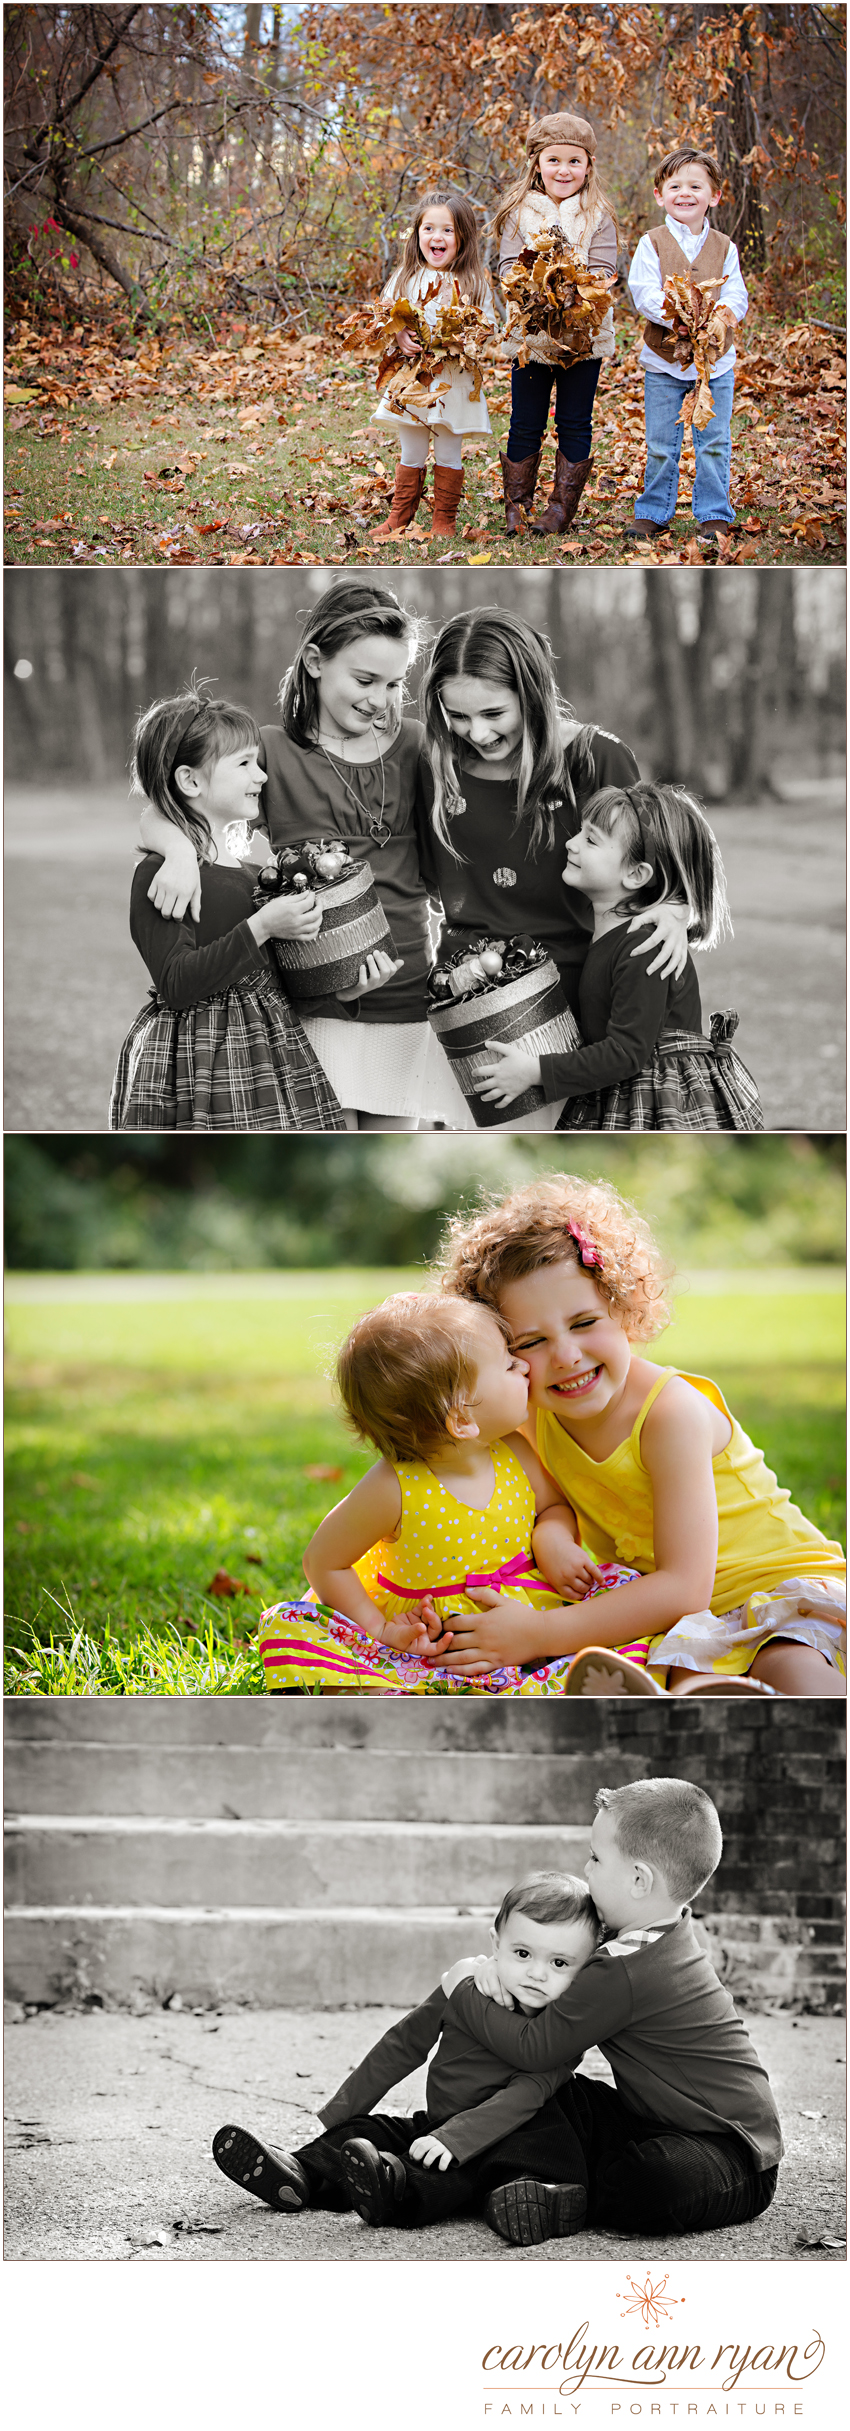 Charlotte, NC Sibling Photographer Carolyn Ann Ryan shares favorite sibling portraits